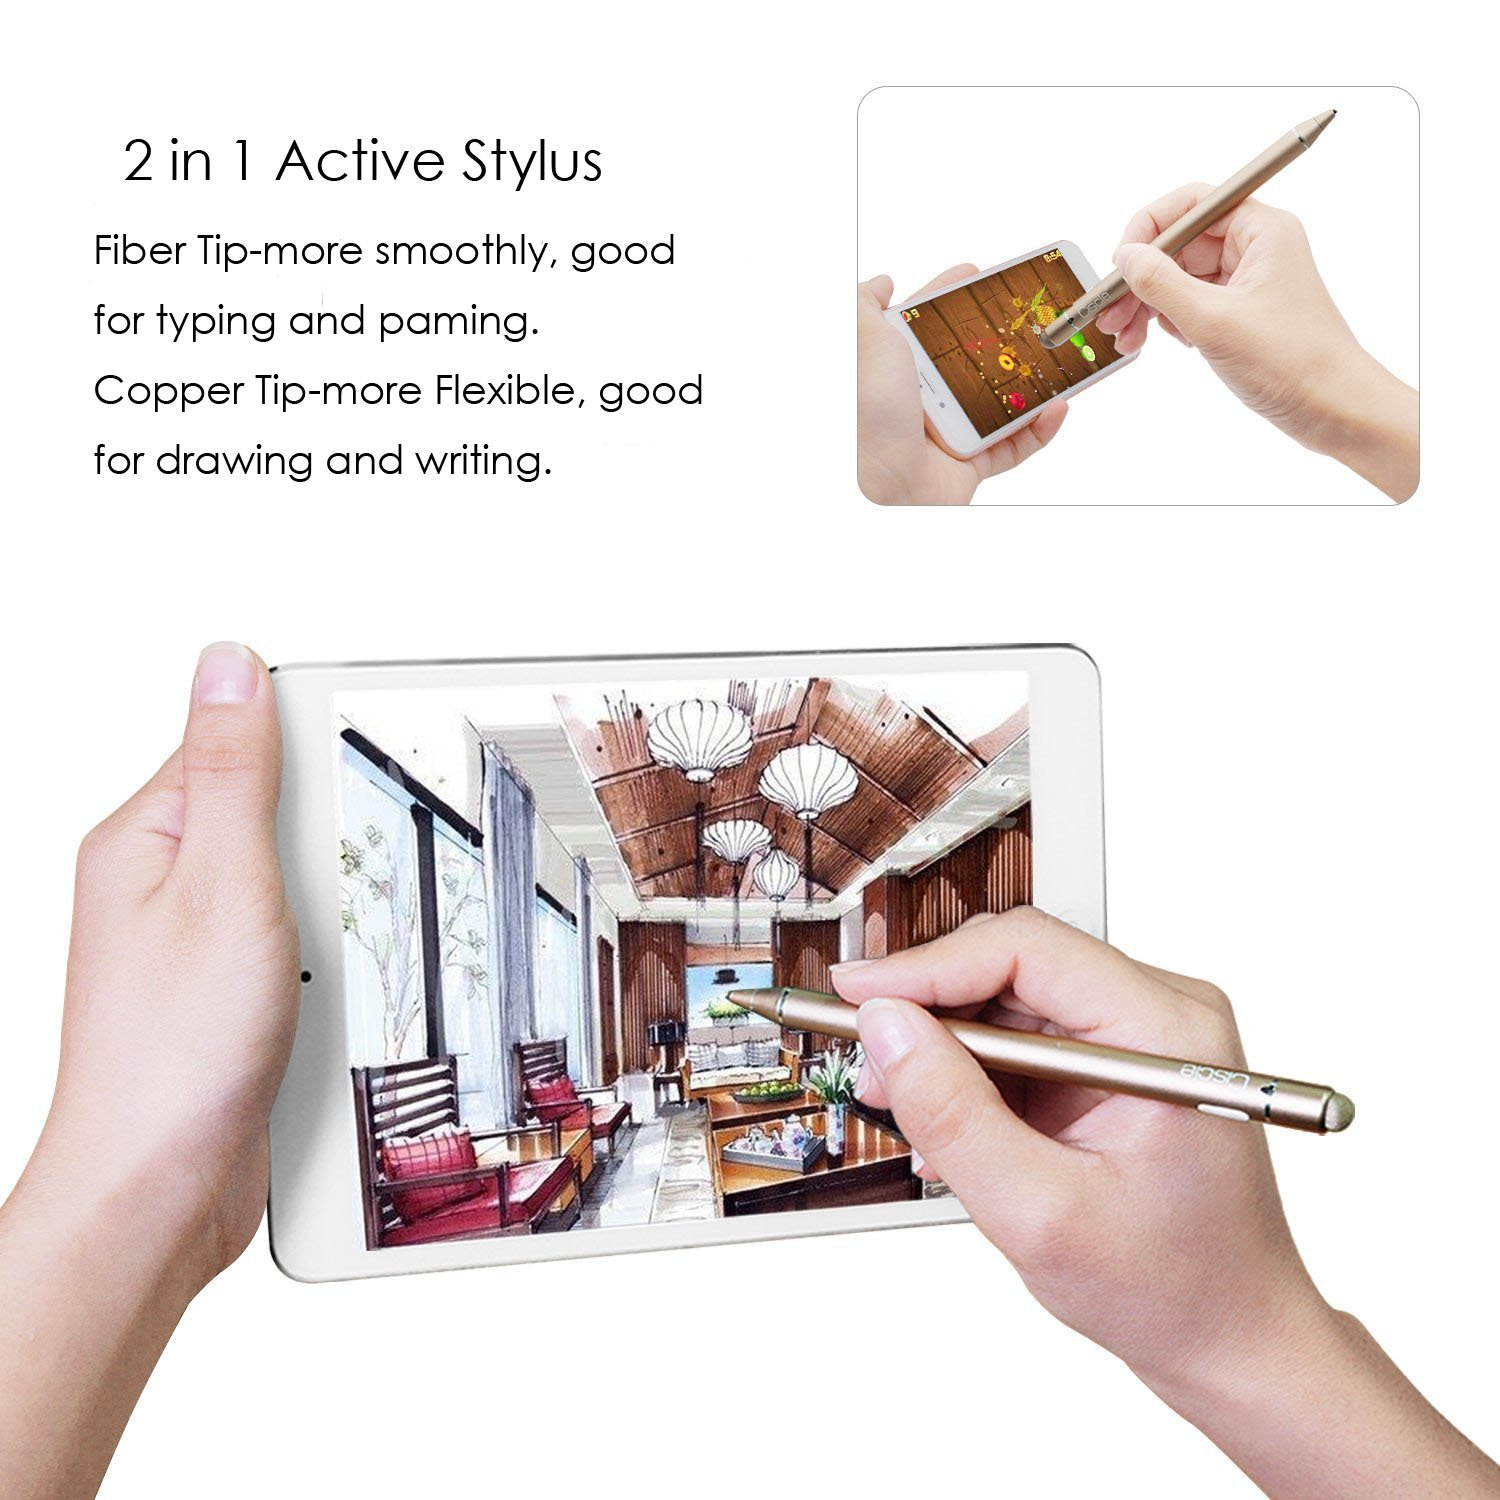 Active Stylus Pen, Ciscle Electronic Stylus, 2 in 1 Precision Series with 1.6mm Fine Point Copper Tip and Mesh Tip, for Touch Screen Devices (iPad/iPhone/Andriod or More) -Rose Gold by Ciscle (Image #2)